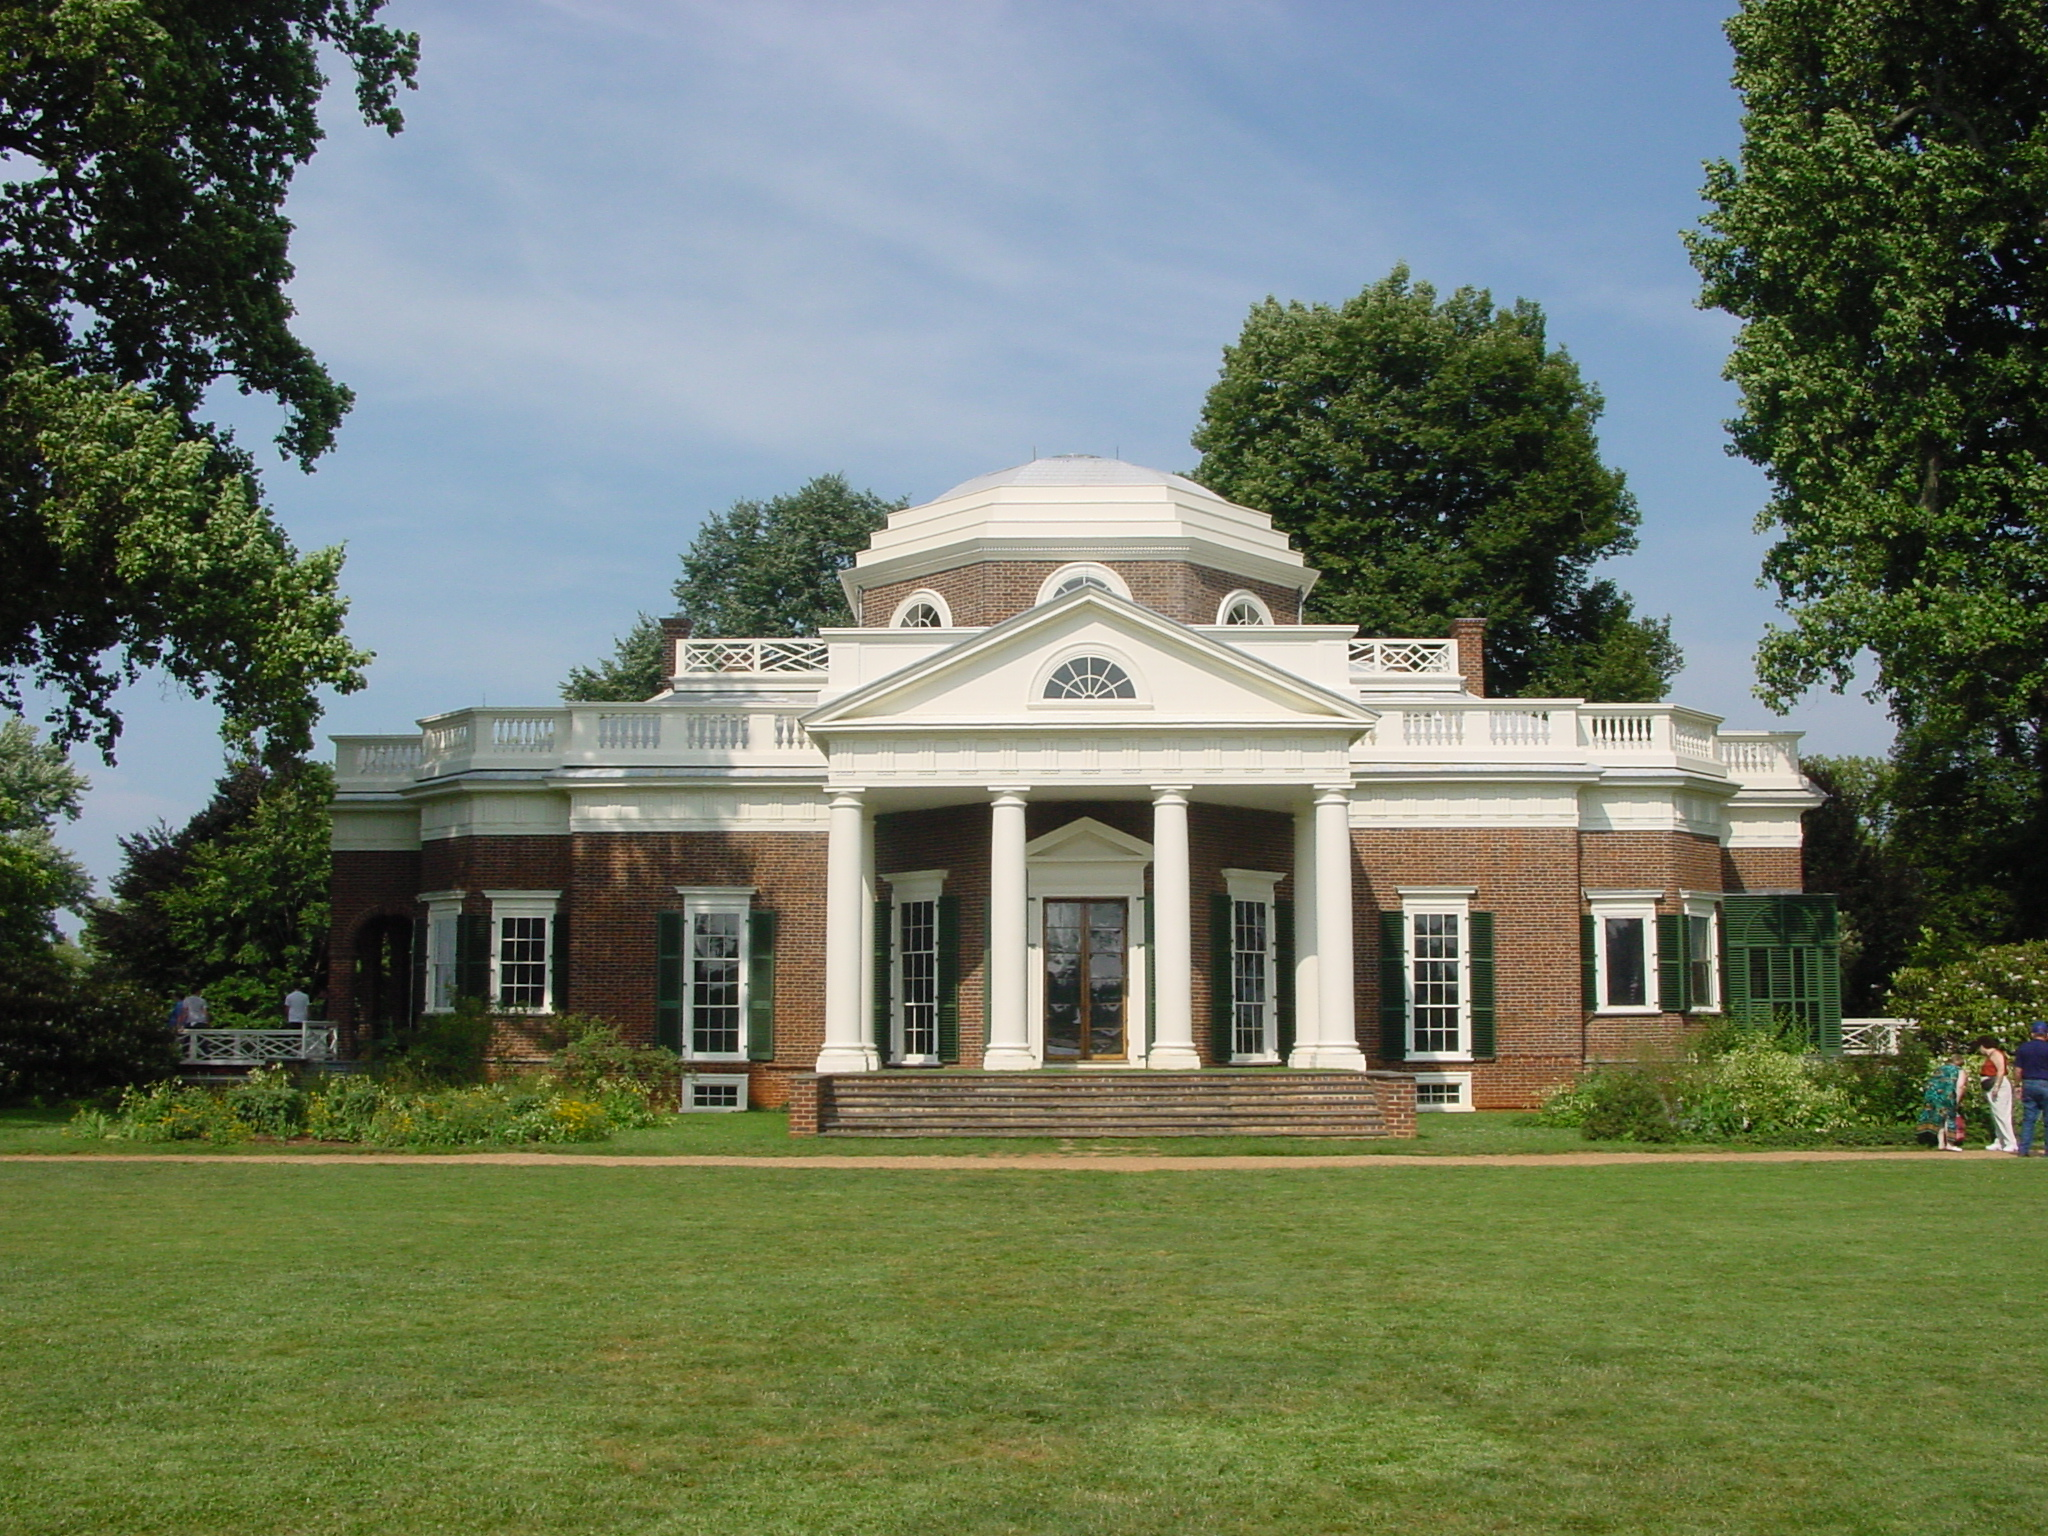 Thomas_Jefferson's_Monticello_Estate.jpg